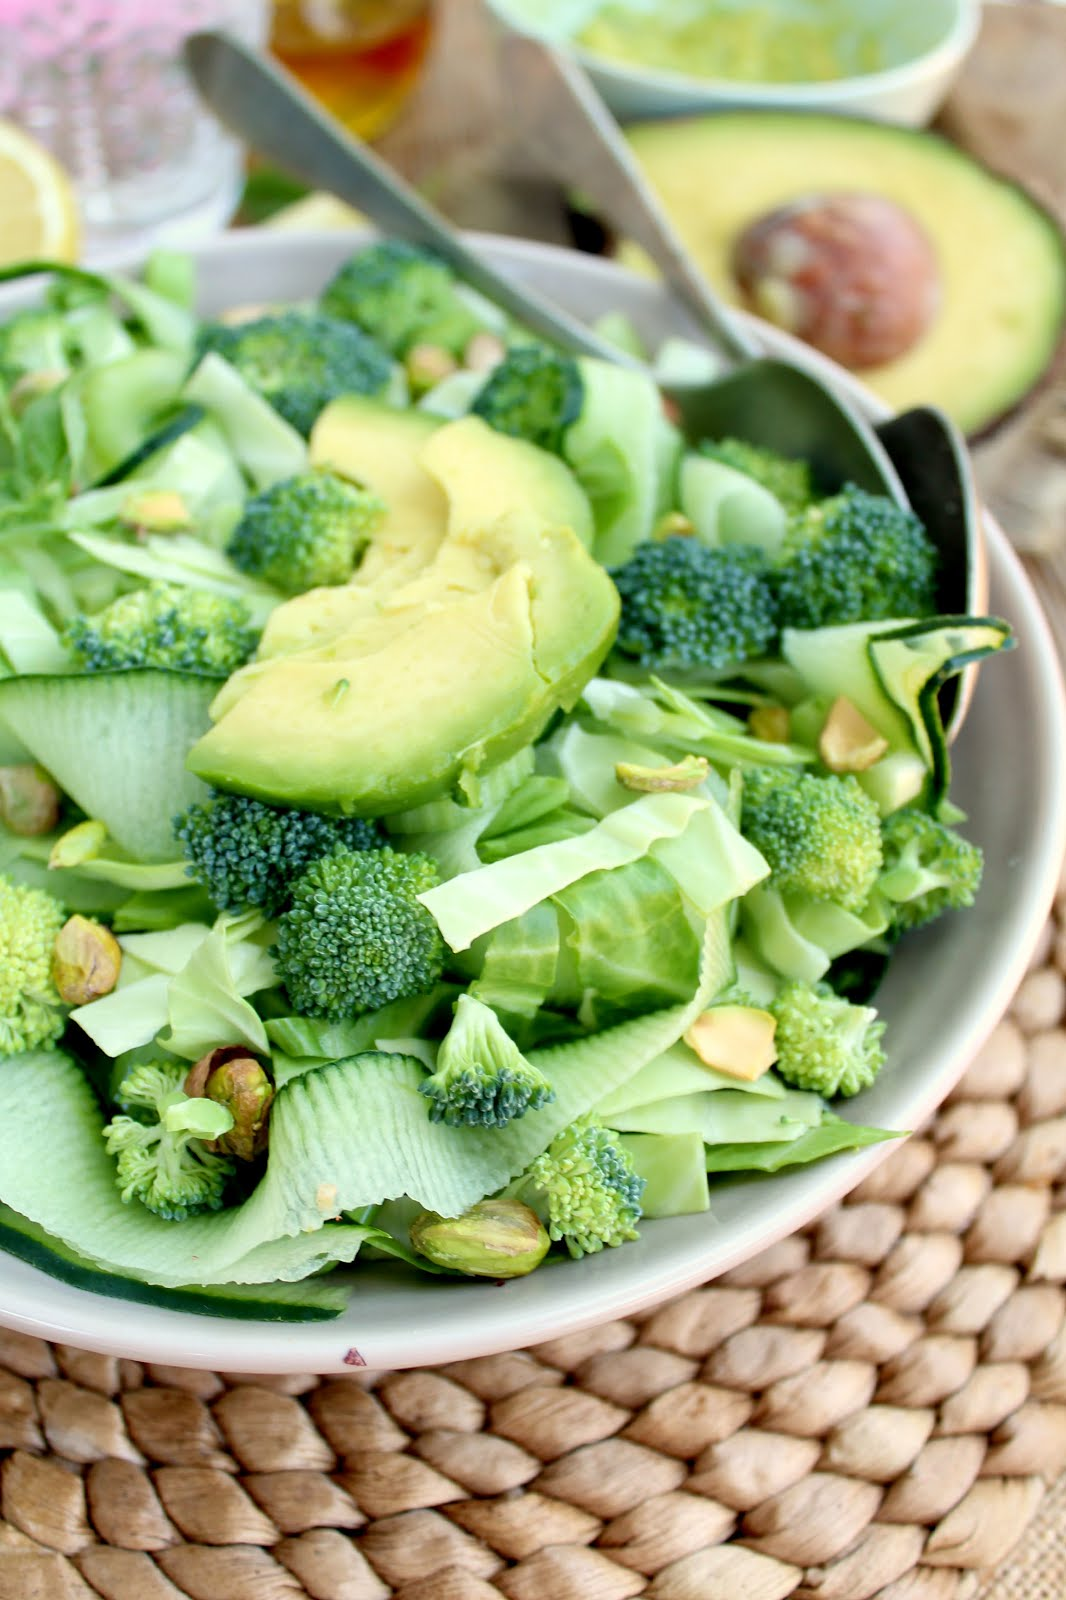 Green Monster Detox Salad: full of healthy stuff to help you de-bloat after too many indulgences!